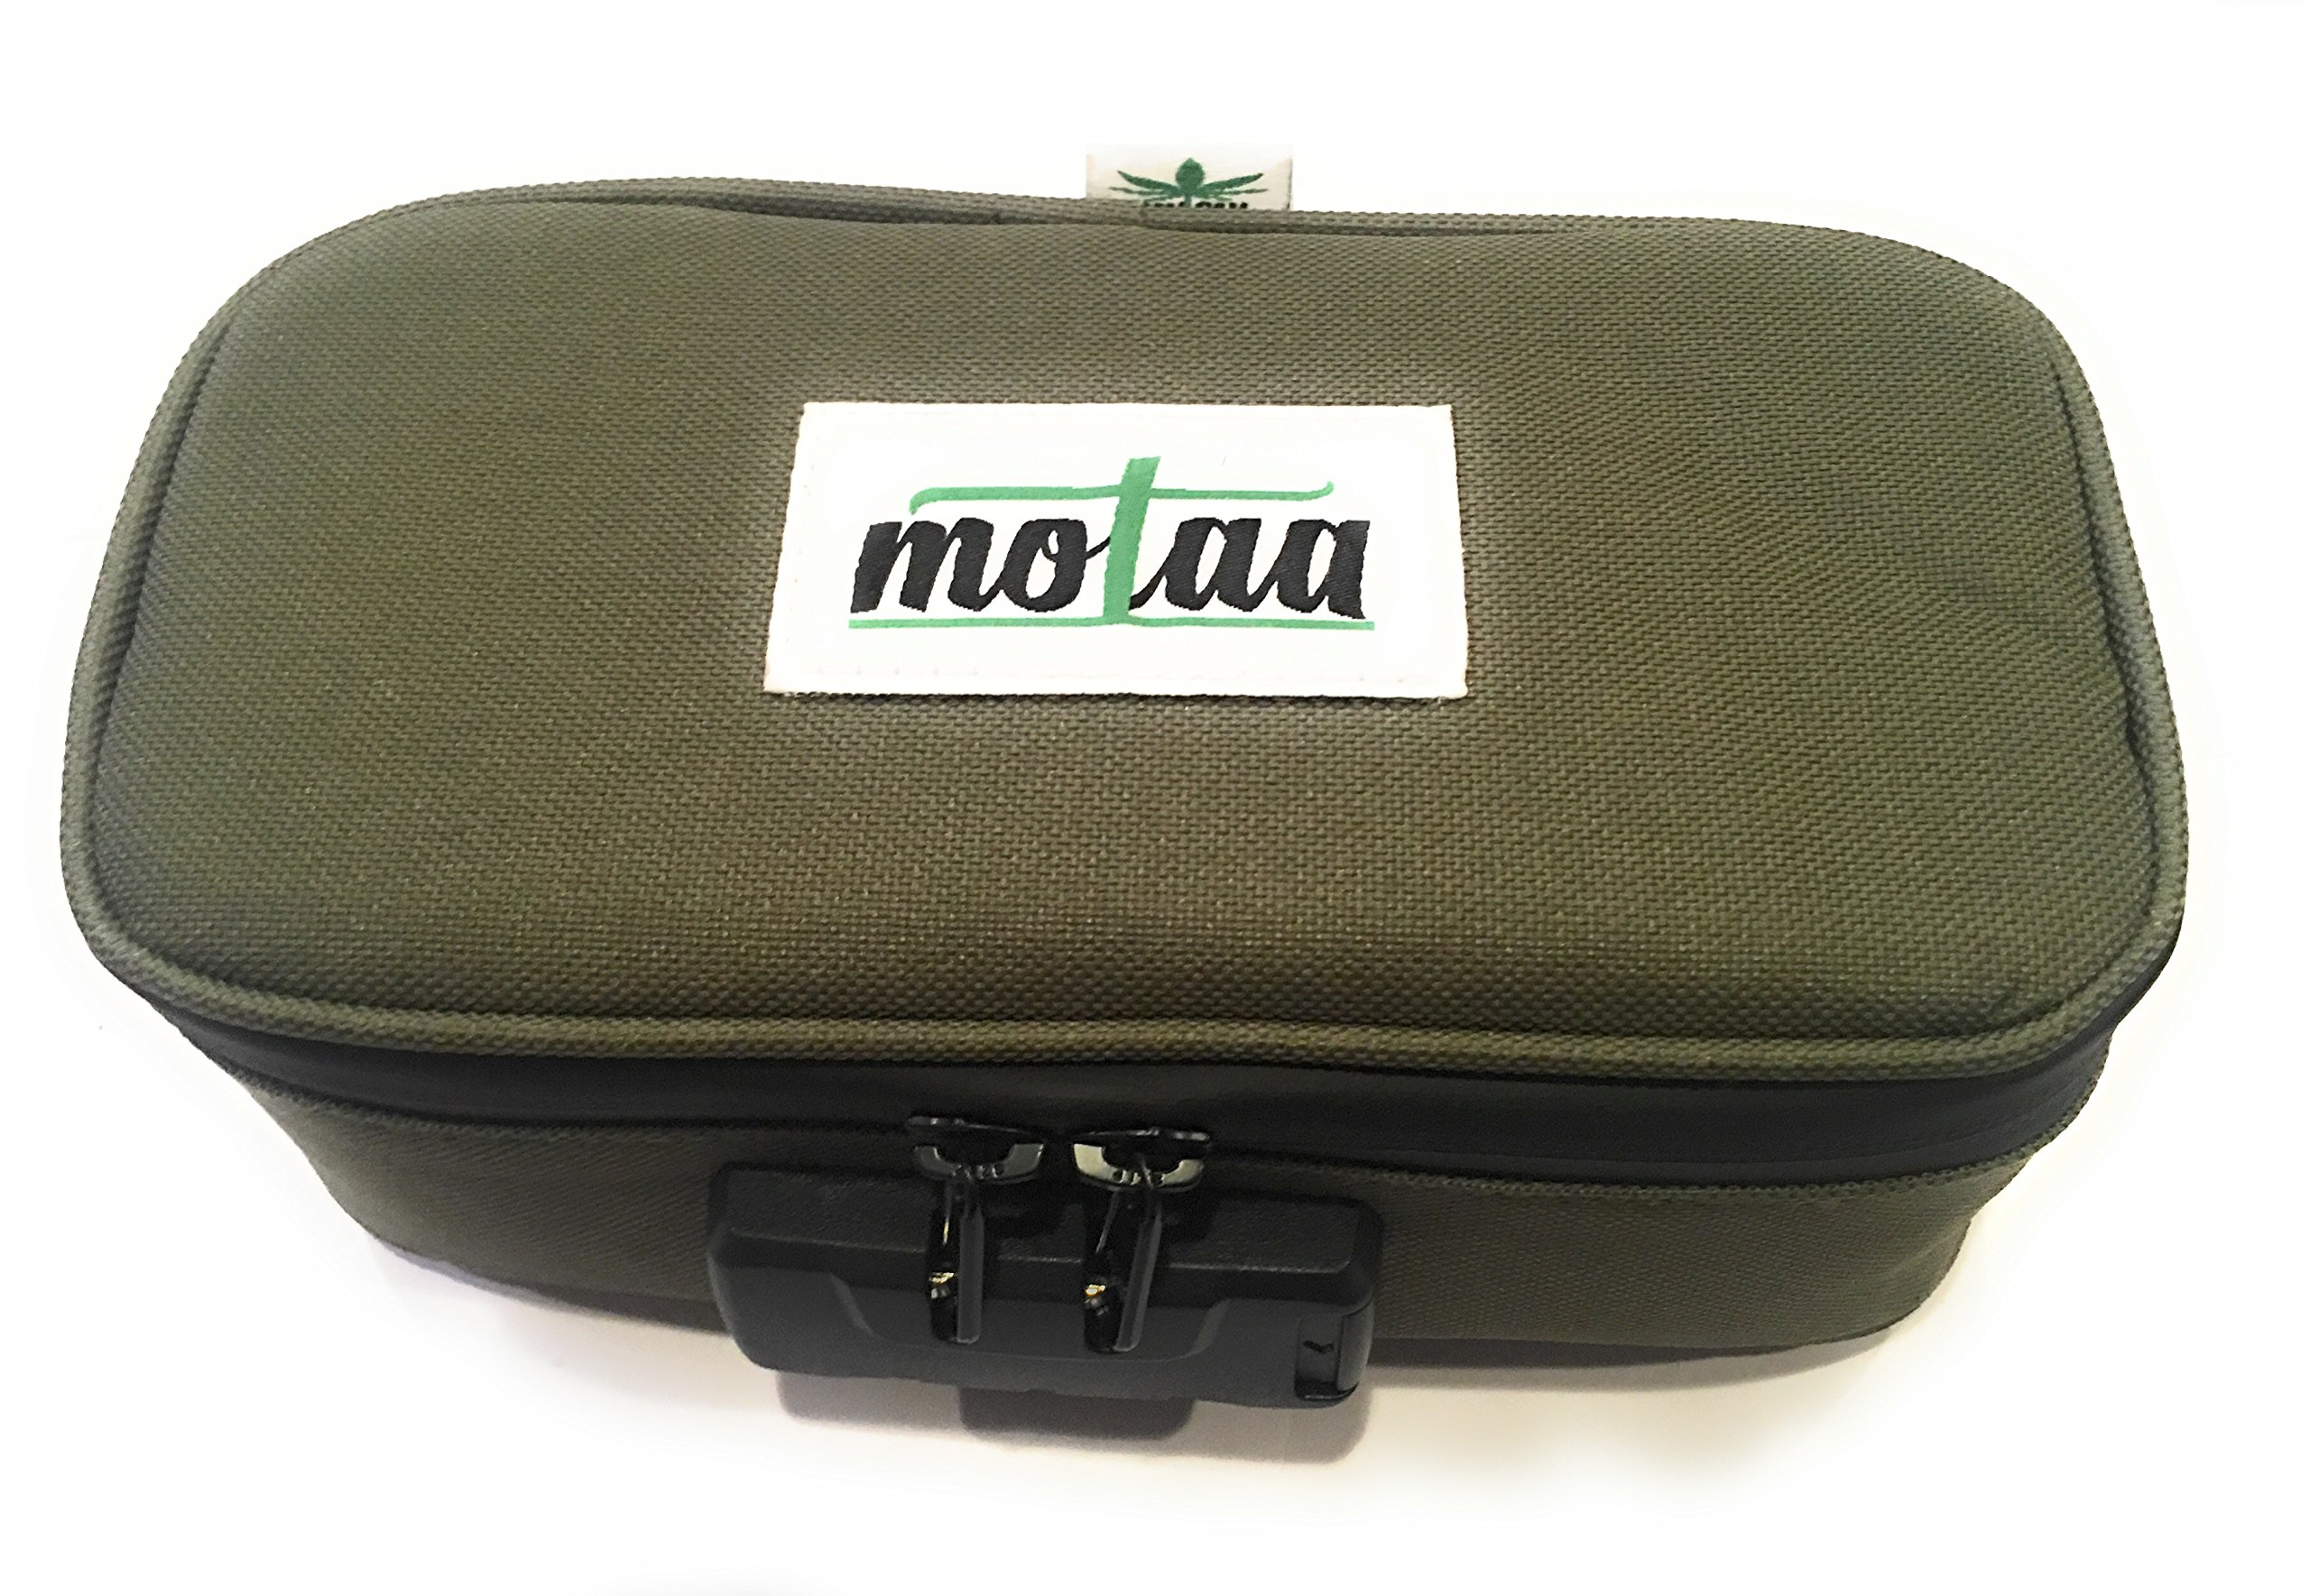 MOTAA Smell Proof case w/Combo Lock with Activated Carbon mesh Material, Includes a Bonus Incense Spoon (Dark Green) by VMC PRODUCTIONS